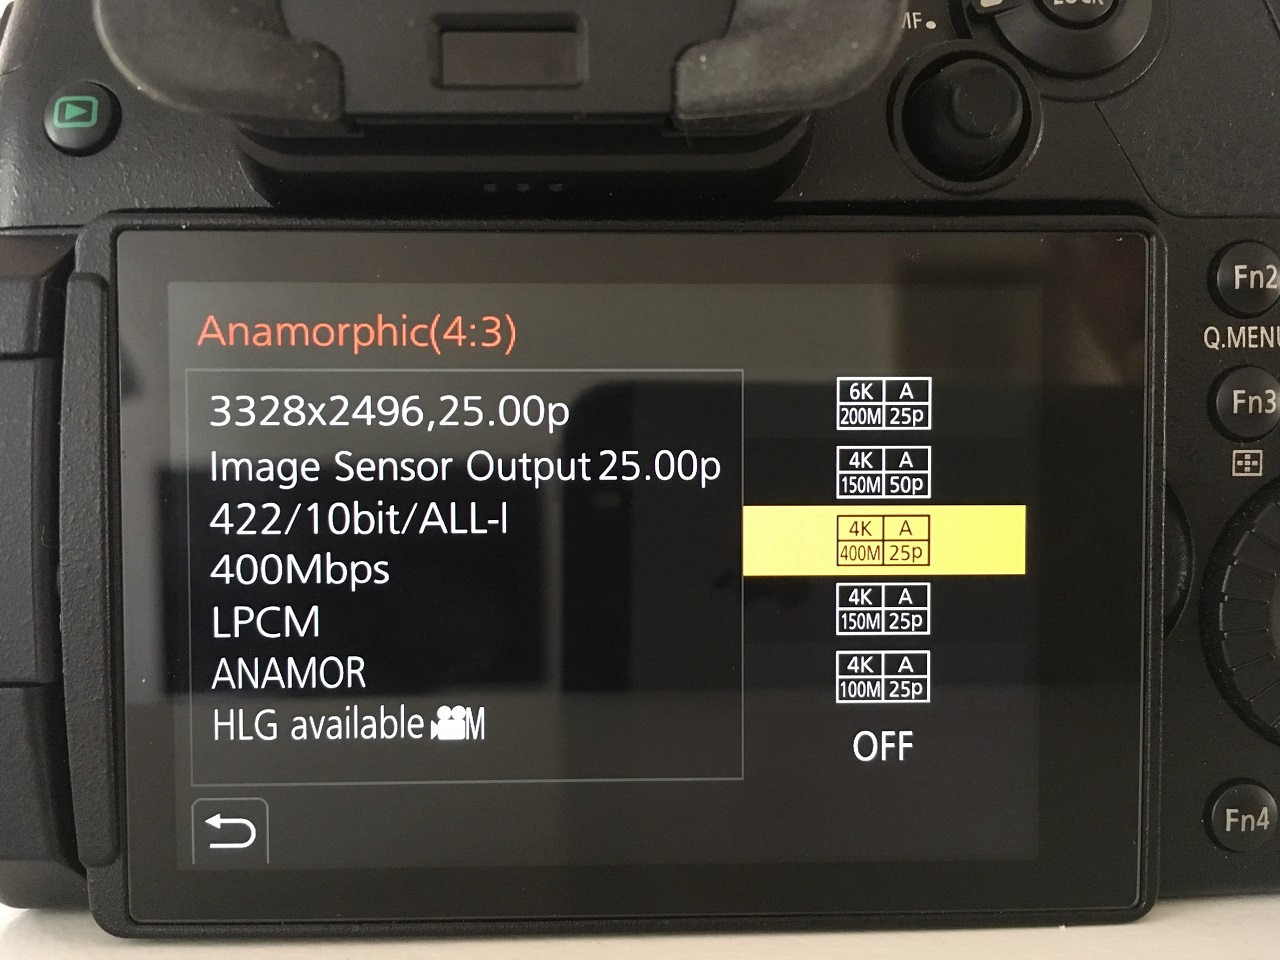 Panasonic GH5 Firmware Update 2 0 Released - 400Mbps ALL-I